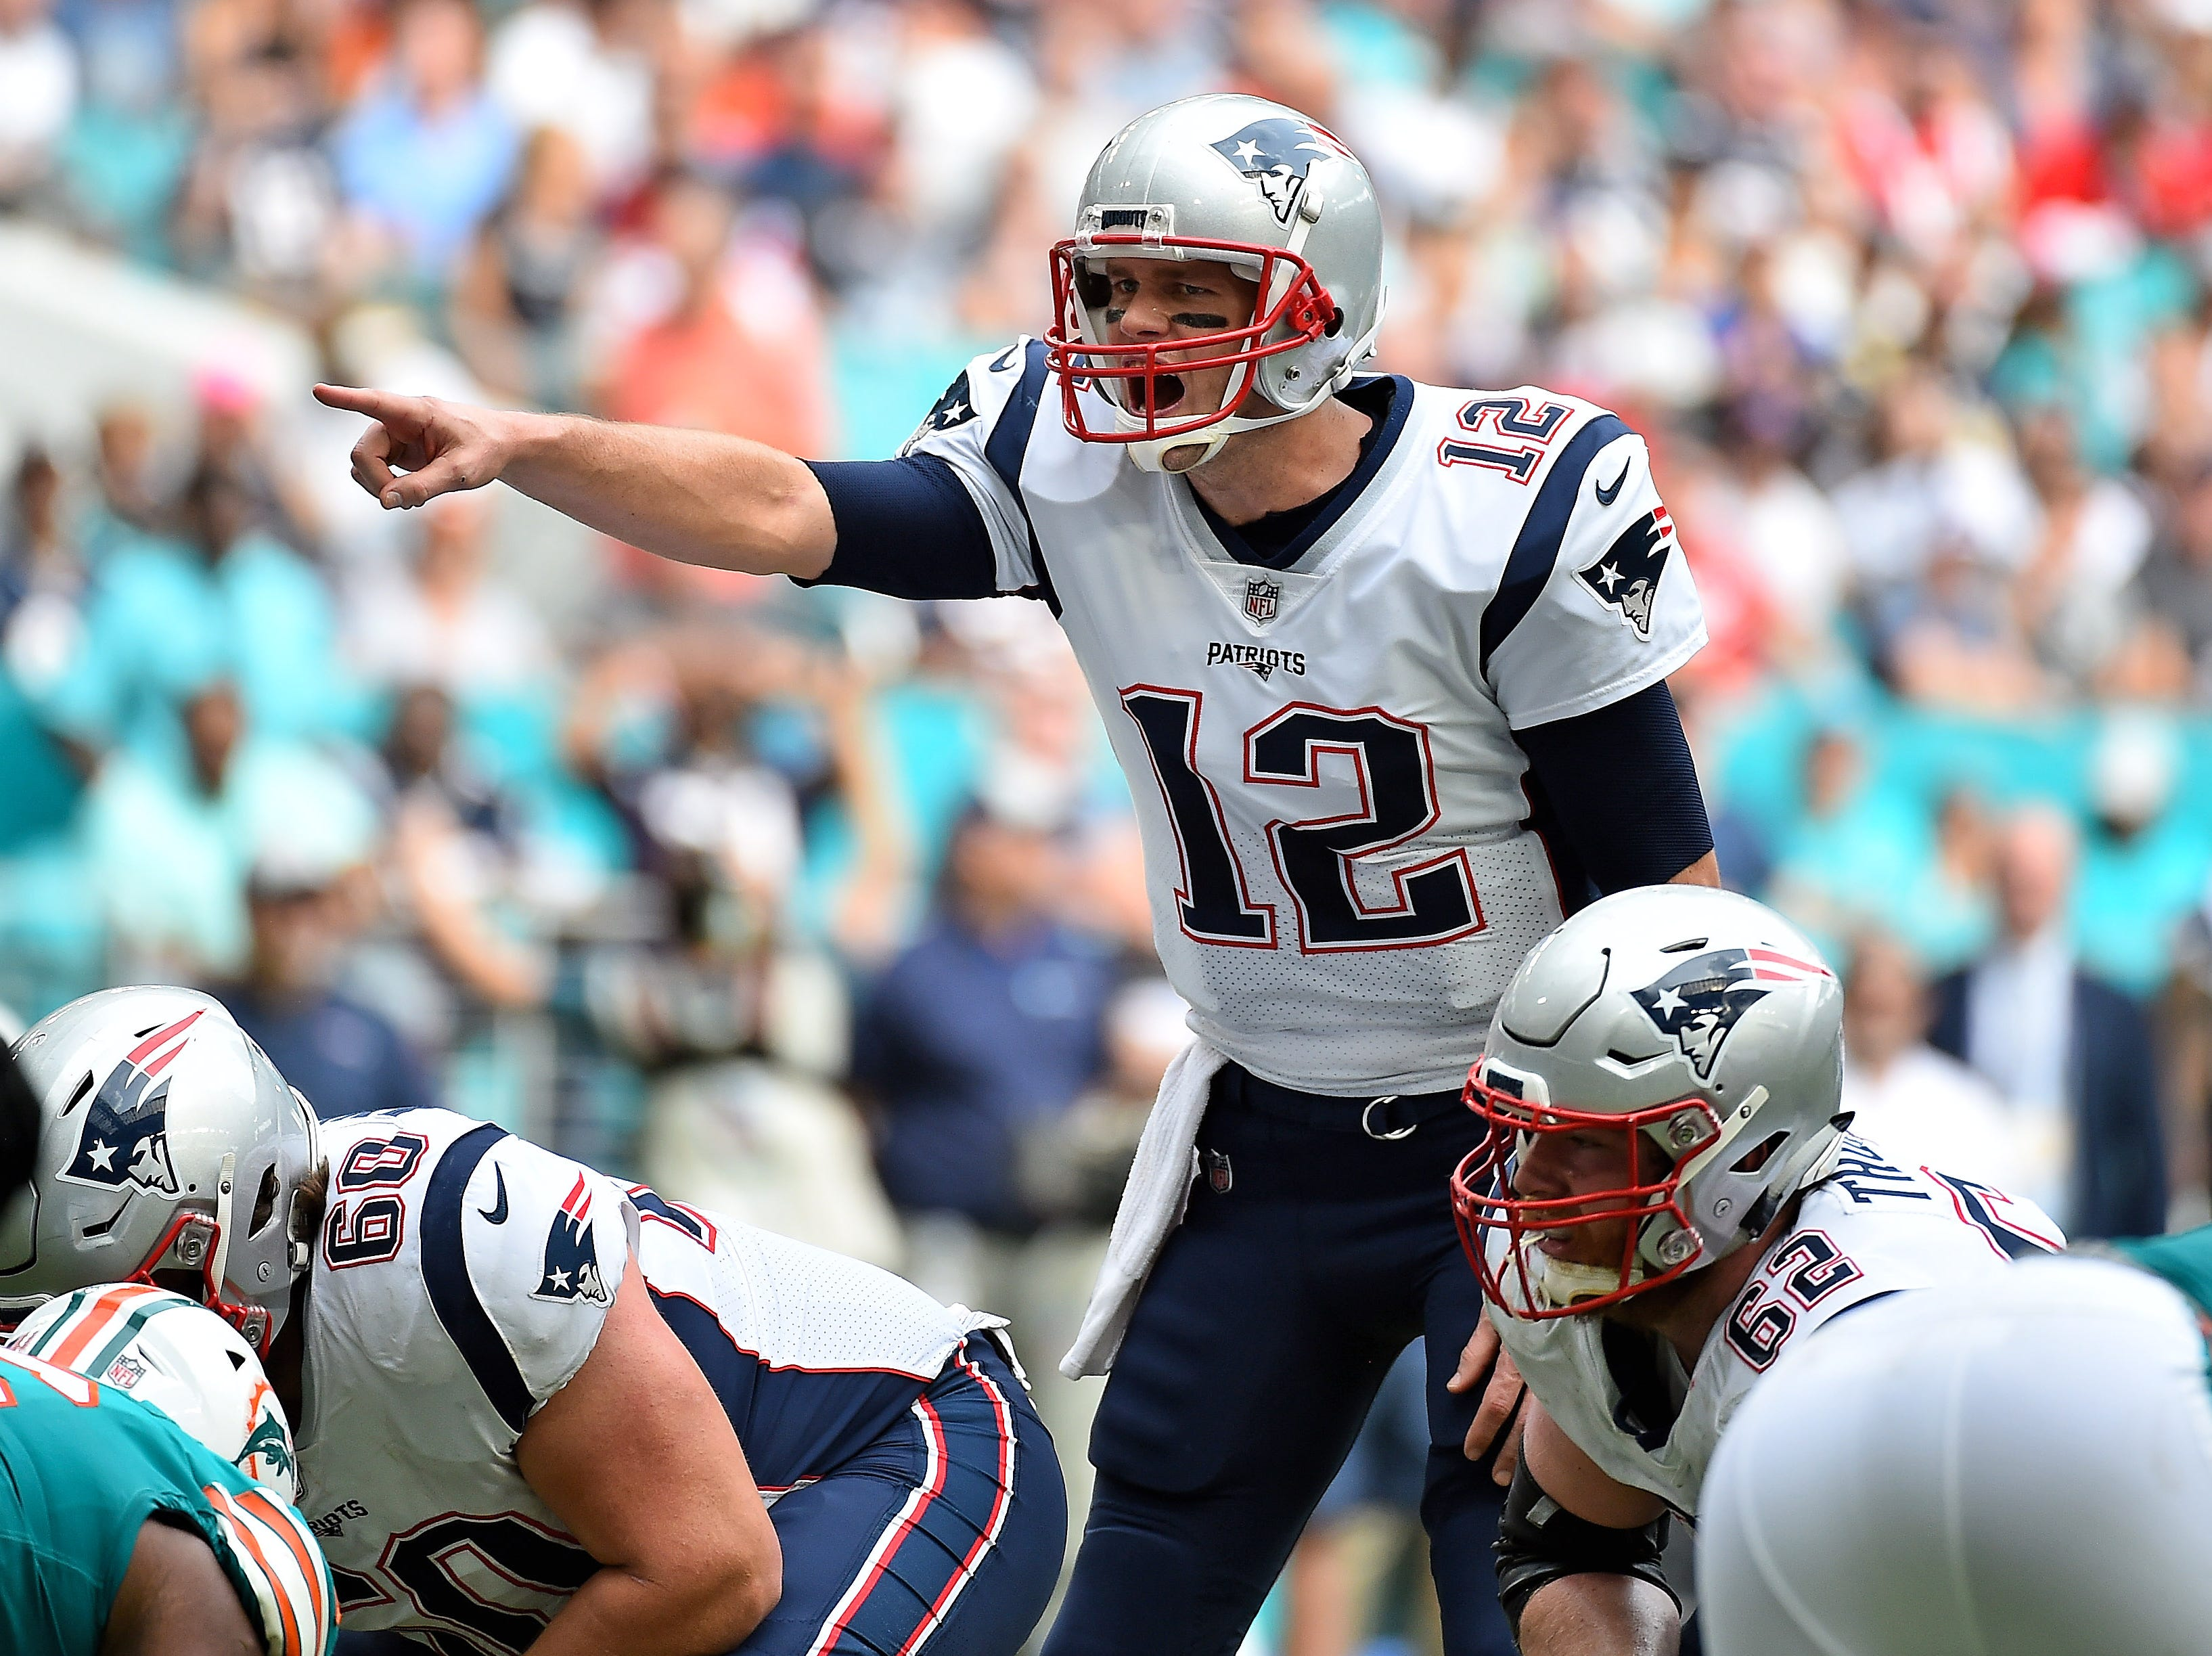 Patriots quarterback Tom Brady signals at the line of scrimmage against the Dolphins.